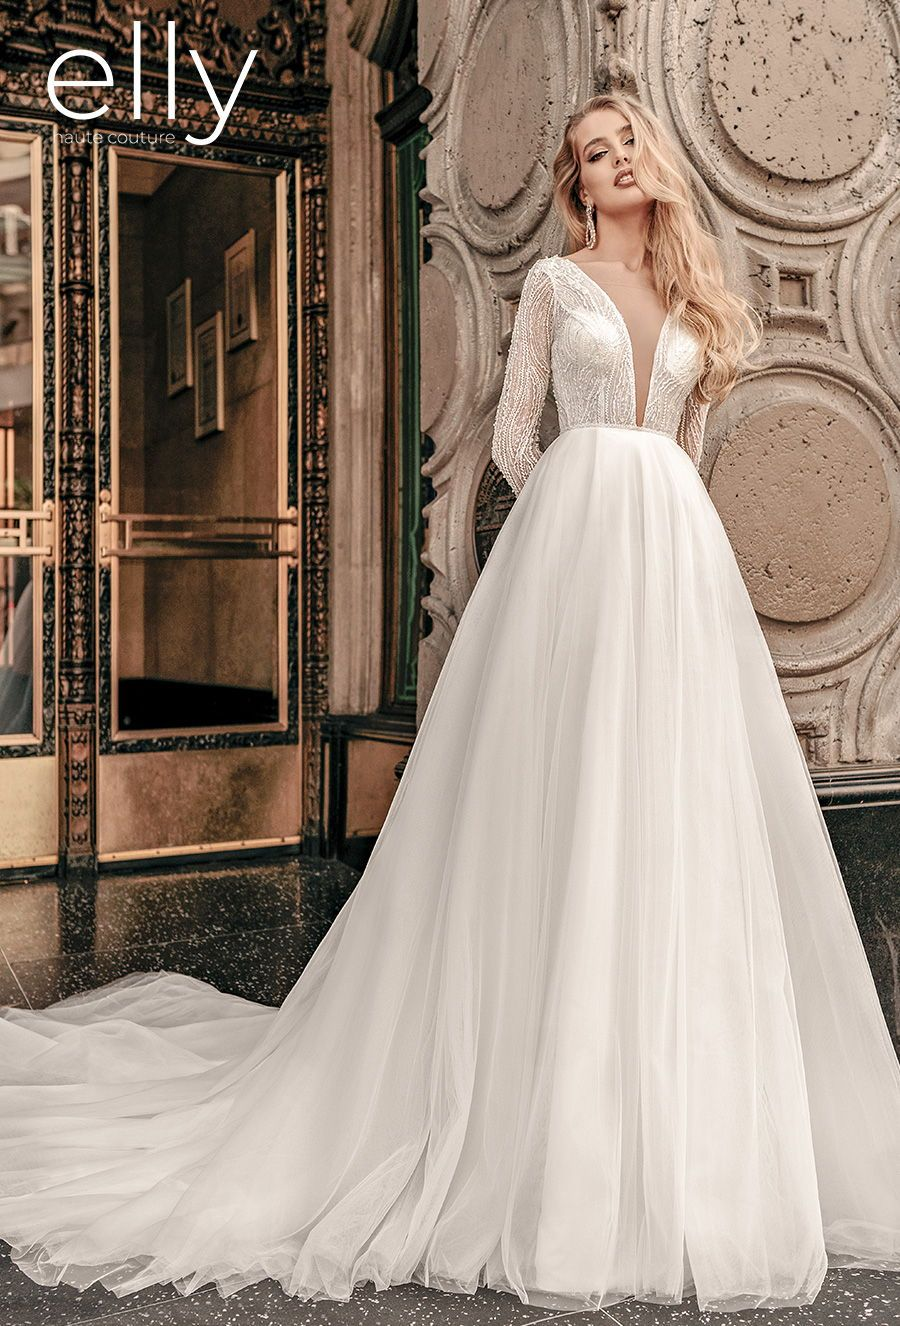 Elly Wedding Dresses Los Angeles Nyc White Mykonos Bridal Collections Wedding Inspirasi In 2020 Wedding Dresses Wedding Dresses Los Angeles Wedding Dress Long Sleeve